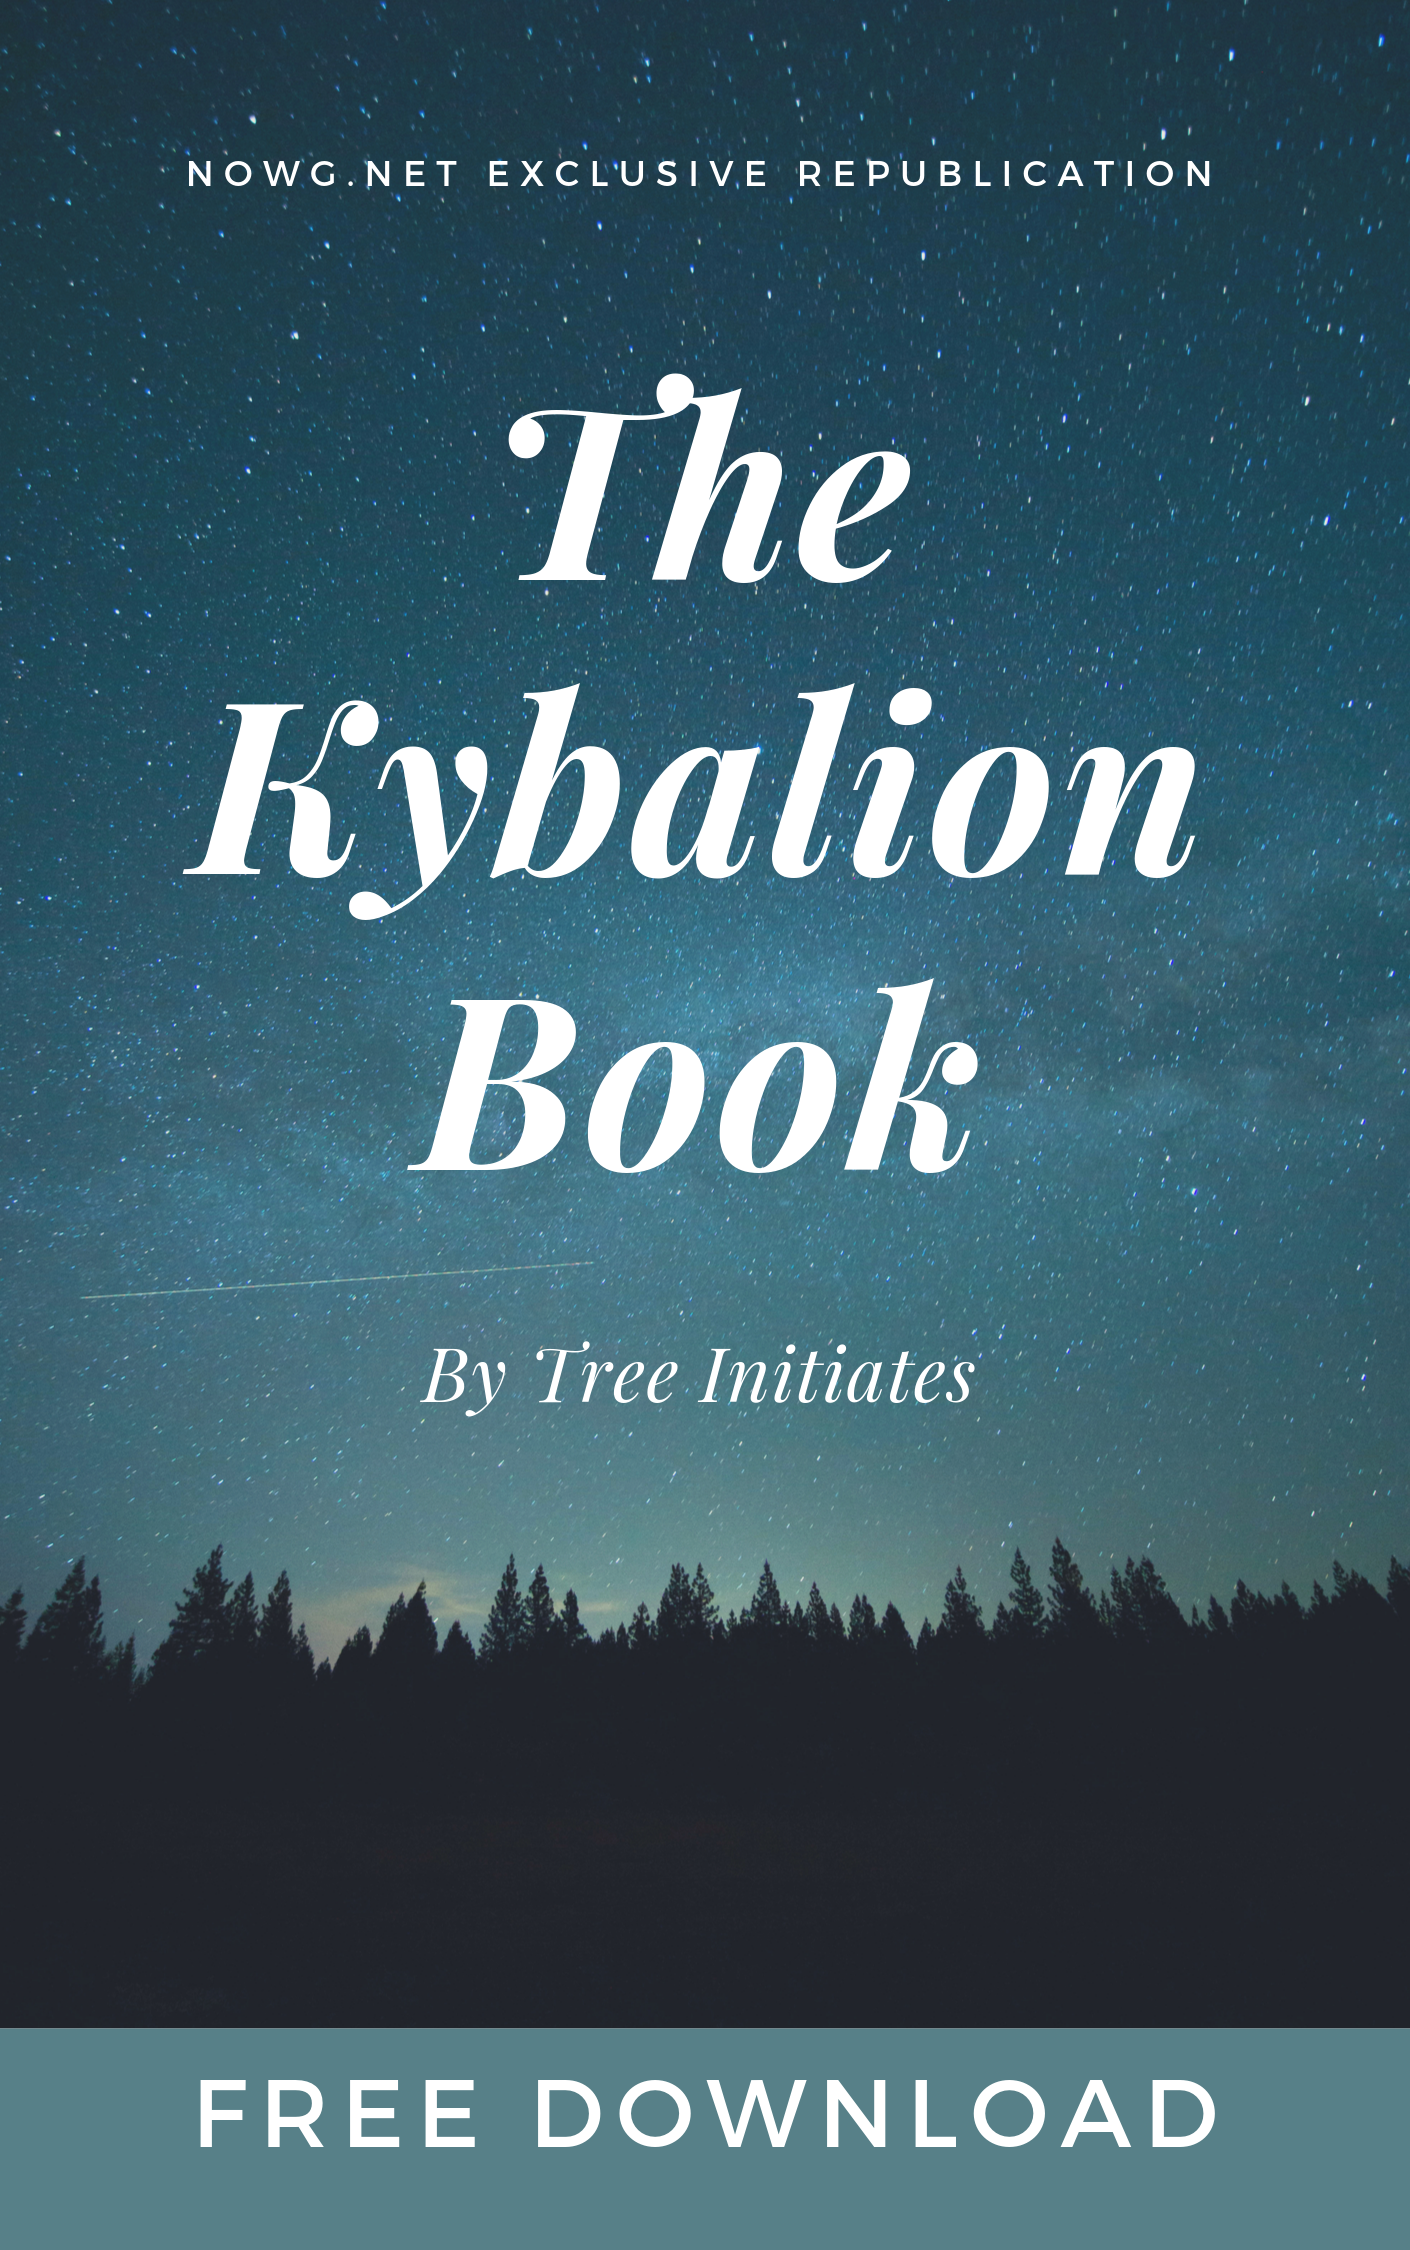 The Kybalion by tree initiates free download ebook